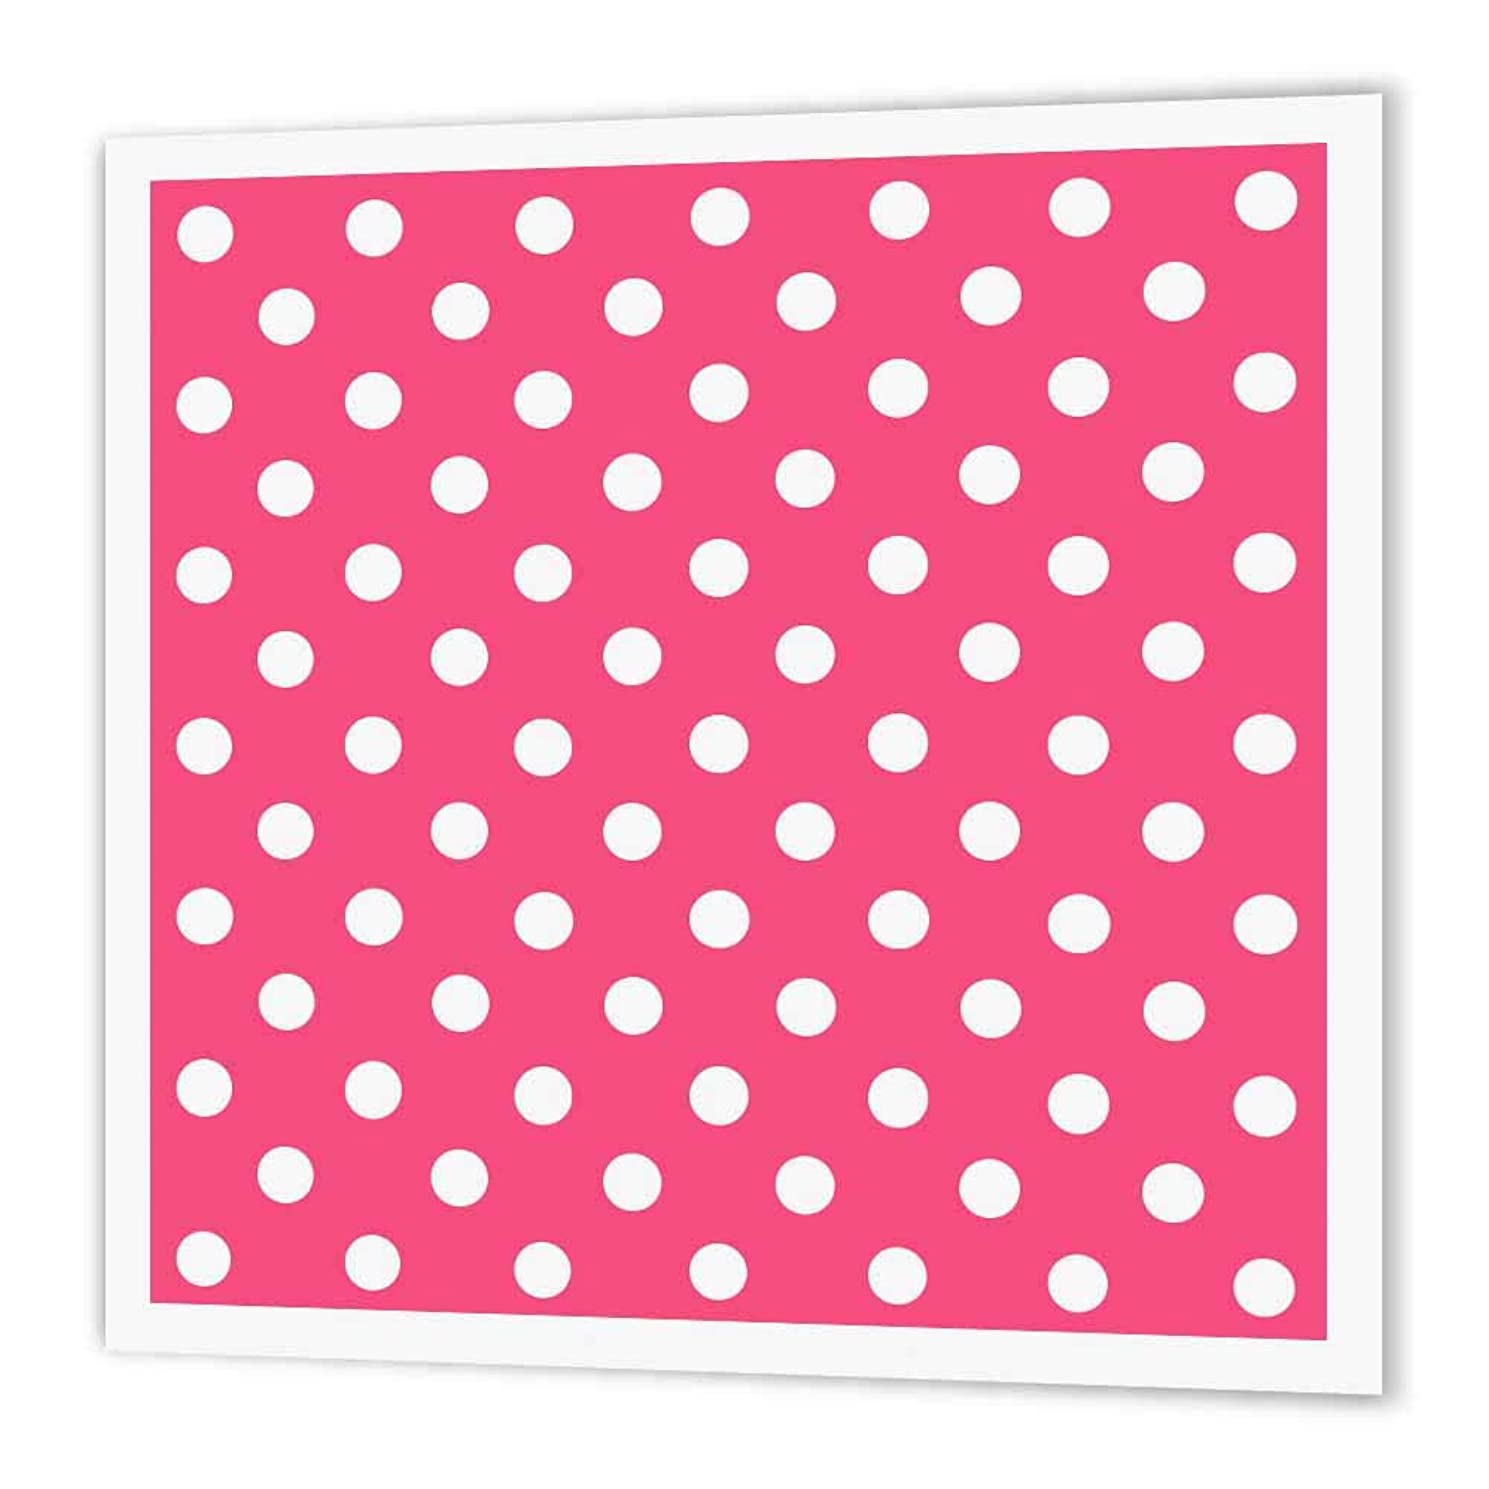 3dRose ht_20403_3 Pink and White Polka Dot Print-Iron on Heat Transfer Paper for White Material, 10 by 10-Inch